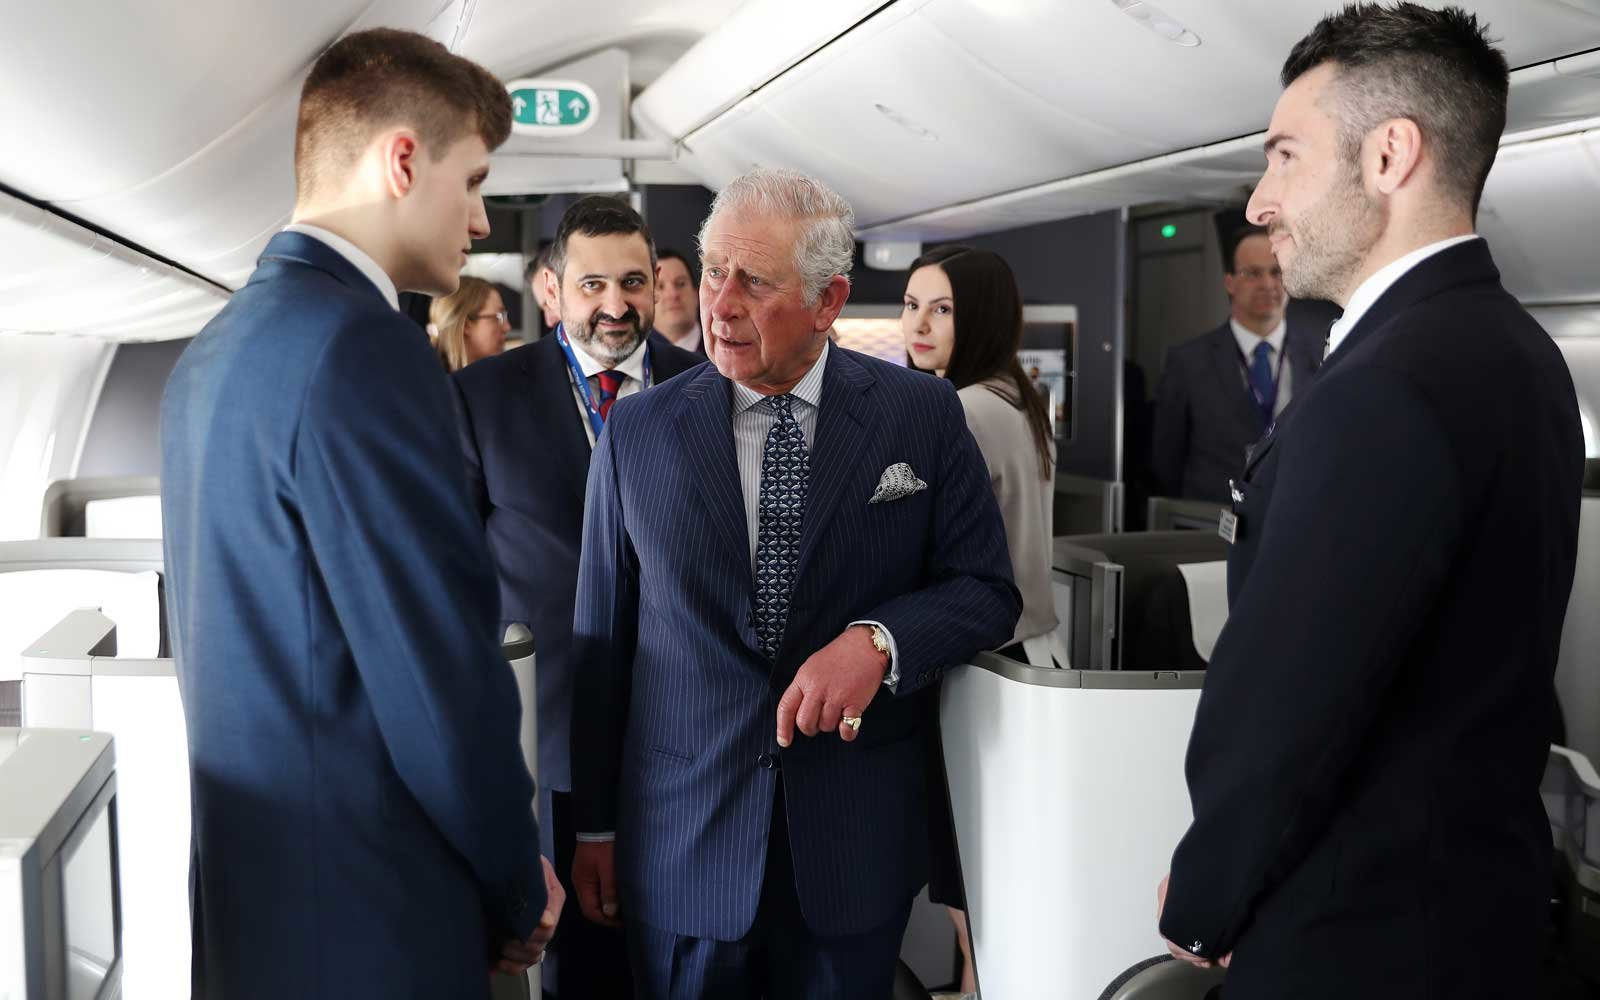 Prince Charles, Prince of Wales speaks to British Airways staff onboard a BA 787 aircraft during a visit to Heathrow Airport on March 13, 2018